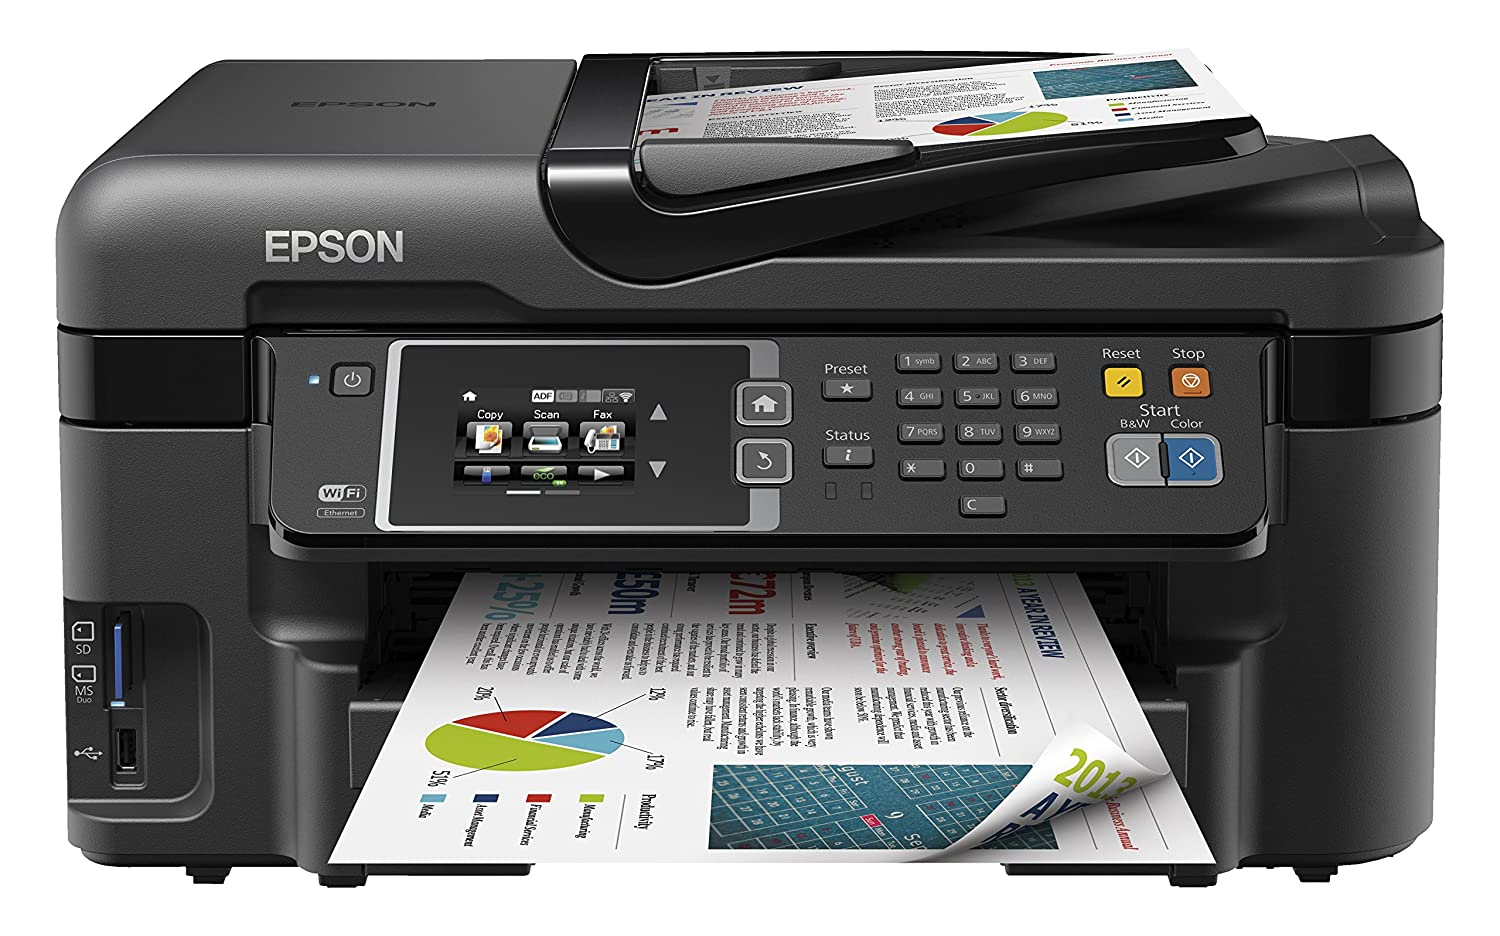 Amazon.com: Epson Workforce Wf-3620dwf A4 ethernet promo max ...